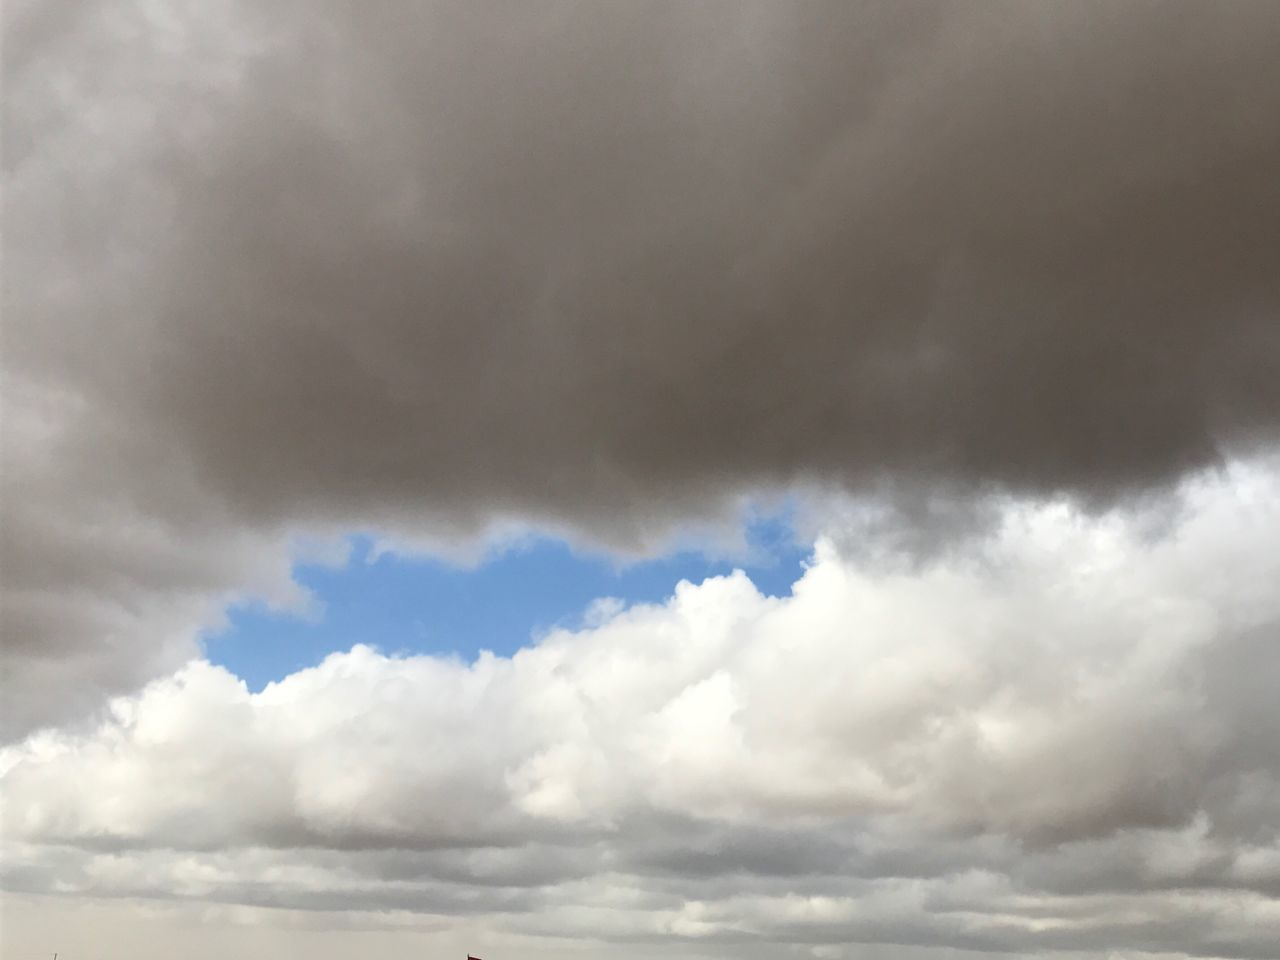 cloud - sky, nature, sky, beauty in nature, weather, scenics, sky only, cloudscape, tranquility, tranquil scene, backgrounds, day, outdoors, low angle view, no people